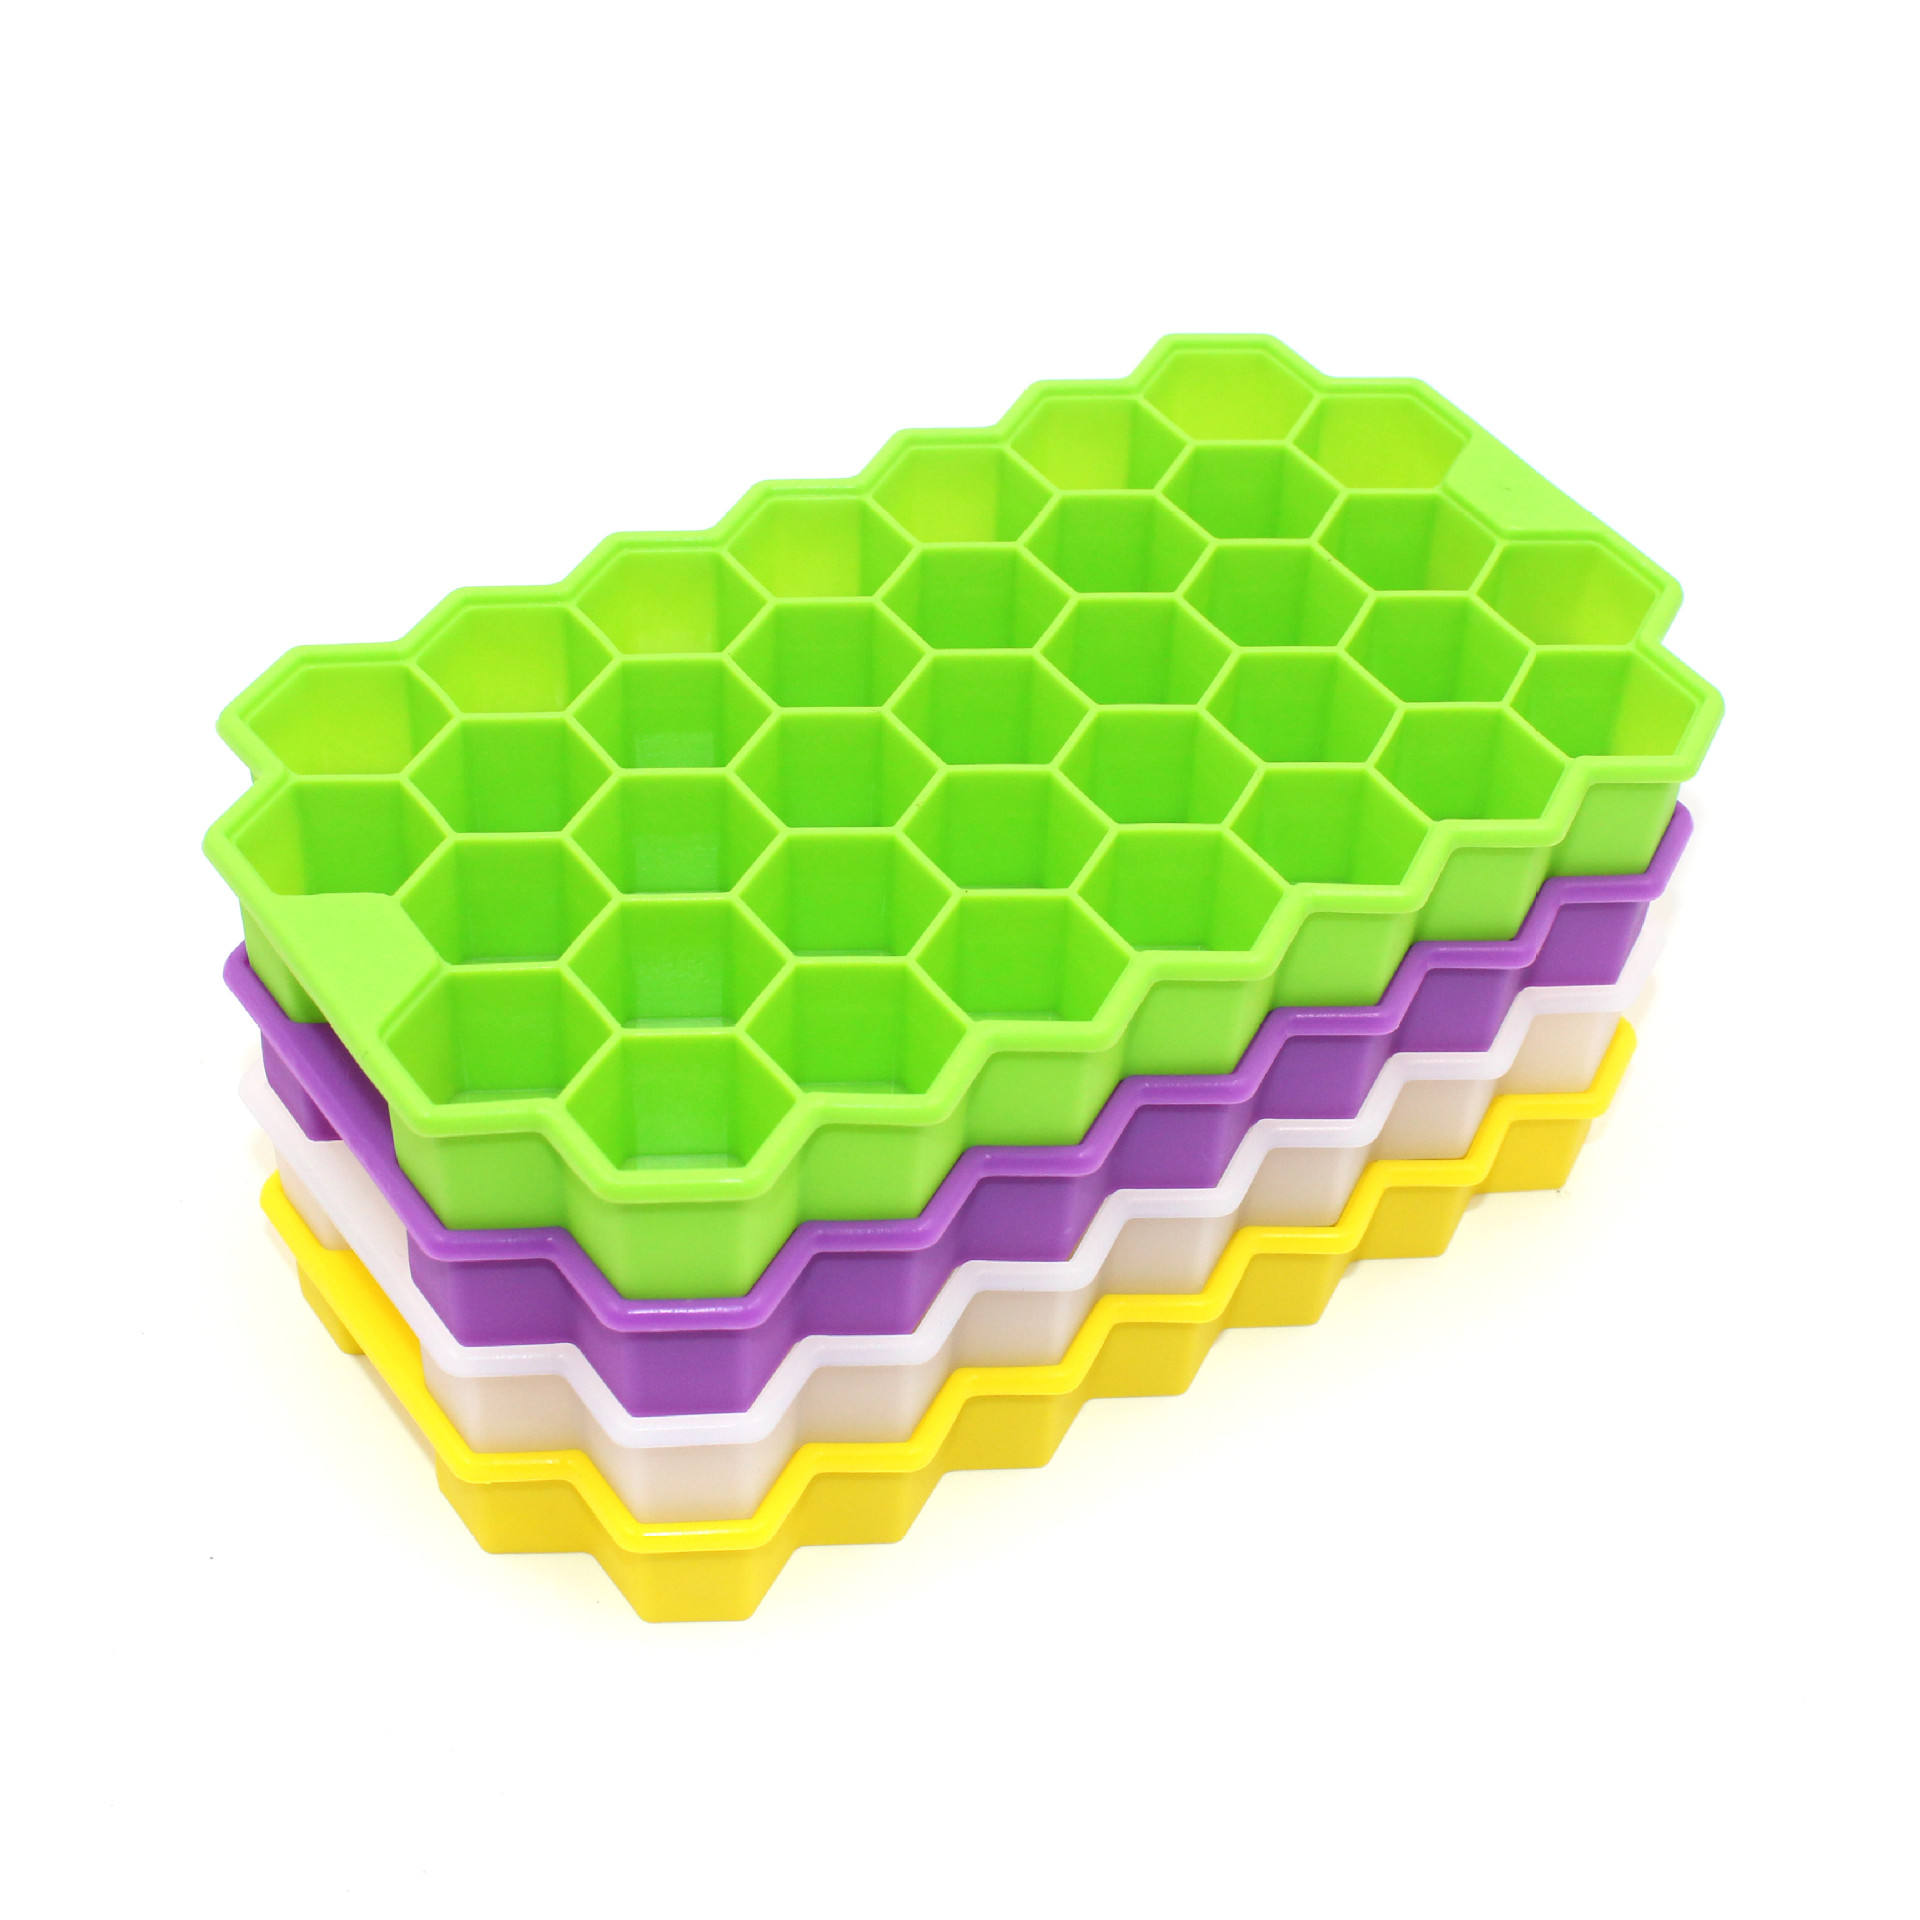 21*12.5*2.5cm 37 cavities Yellow Green Purple White Silicone Honeycomb Ice Cube Trays without lids